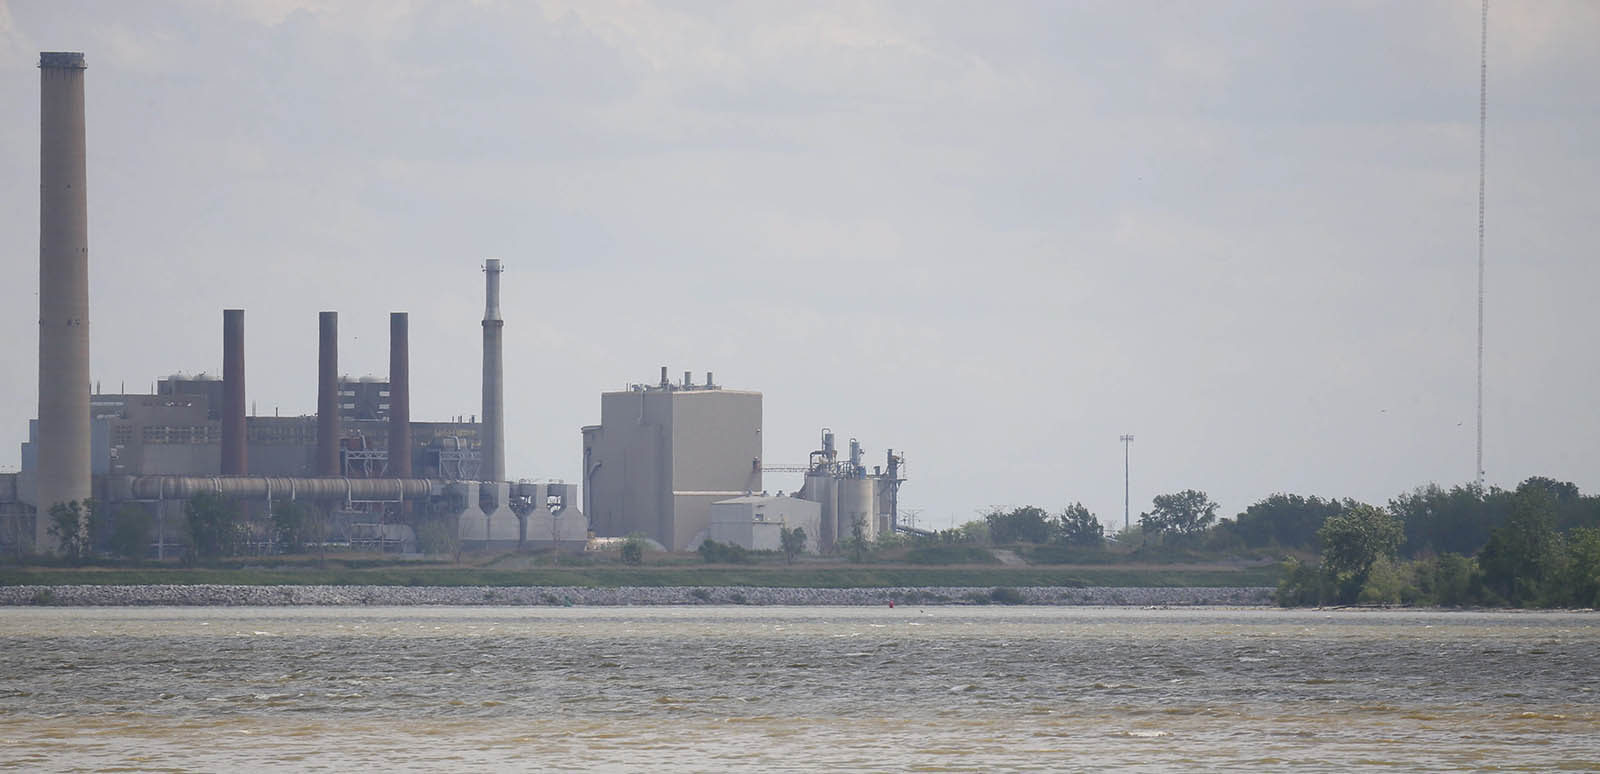 The coal power plant situated at the mouth of the Maumee River at the westernmost end of Lake Erie in Toledo, Ohio, as seen in 2013. (Derek Gee/News file photo)